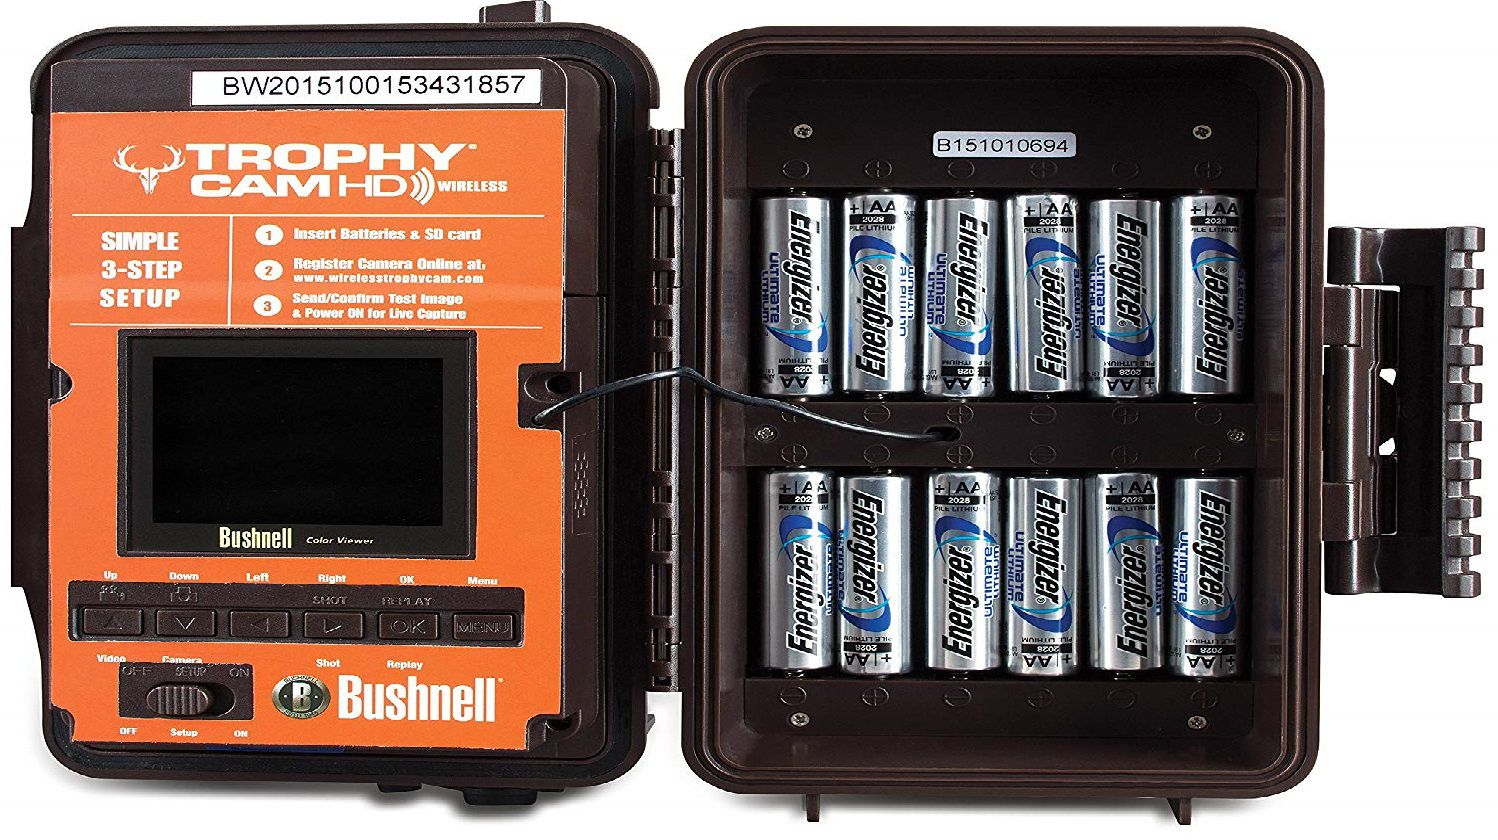 Bushnell 119599C2 Trophy Wireless Trail Camera Review